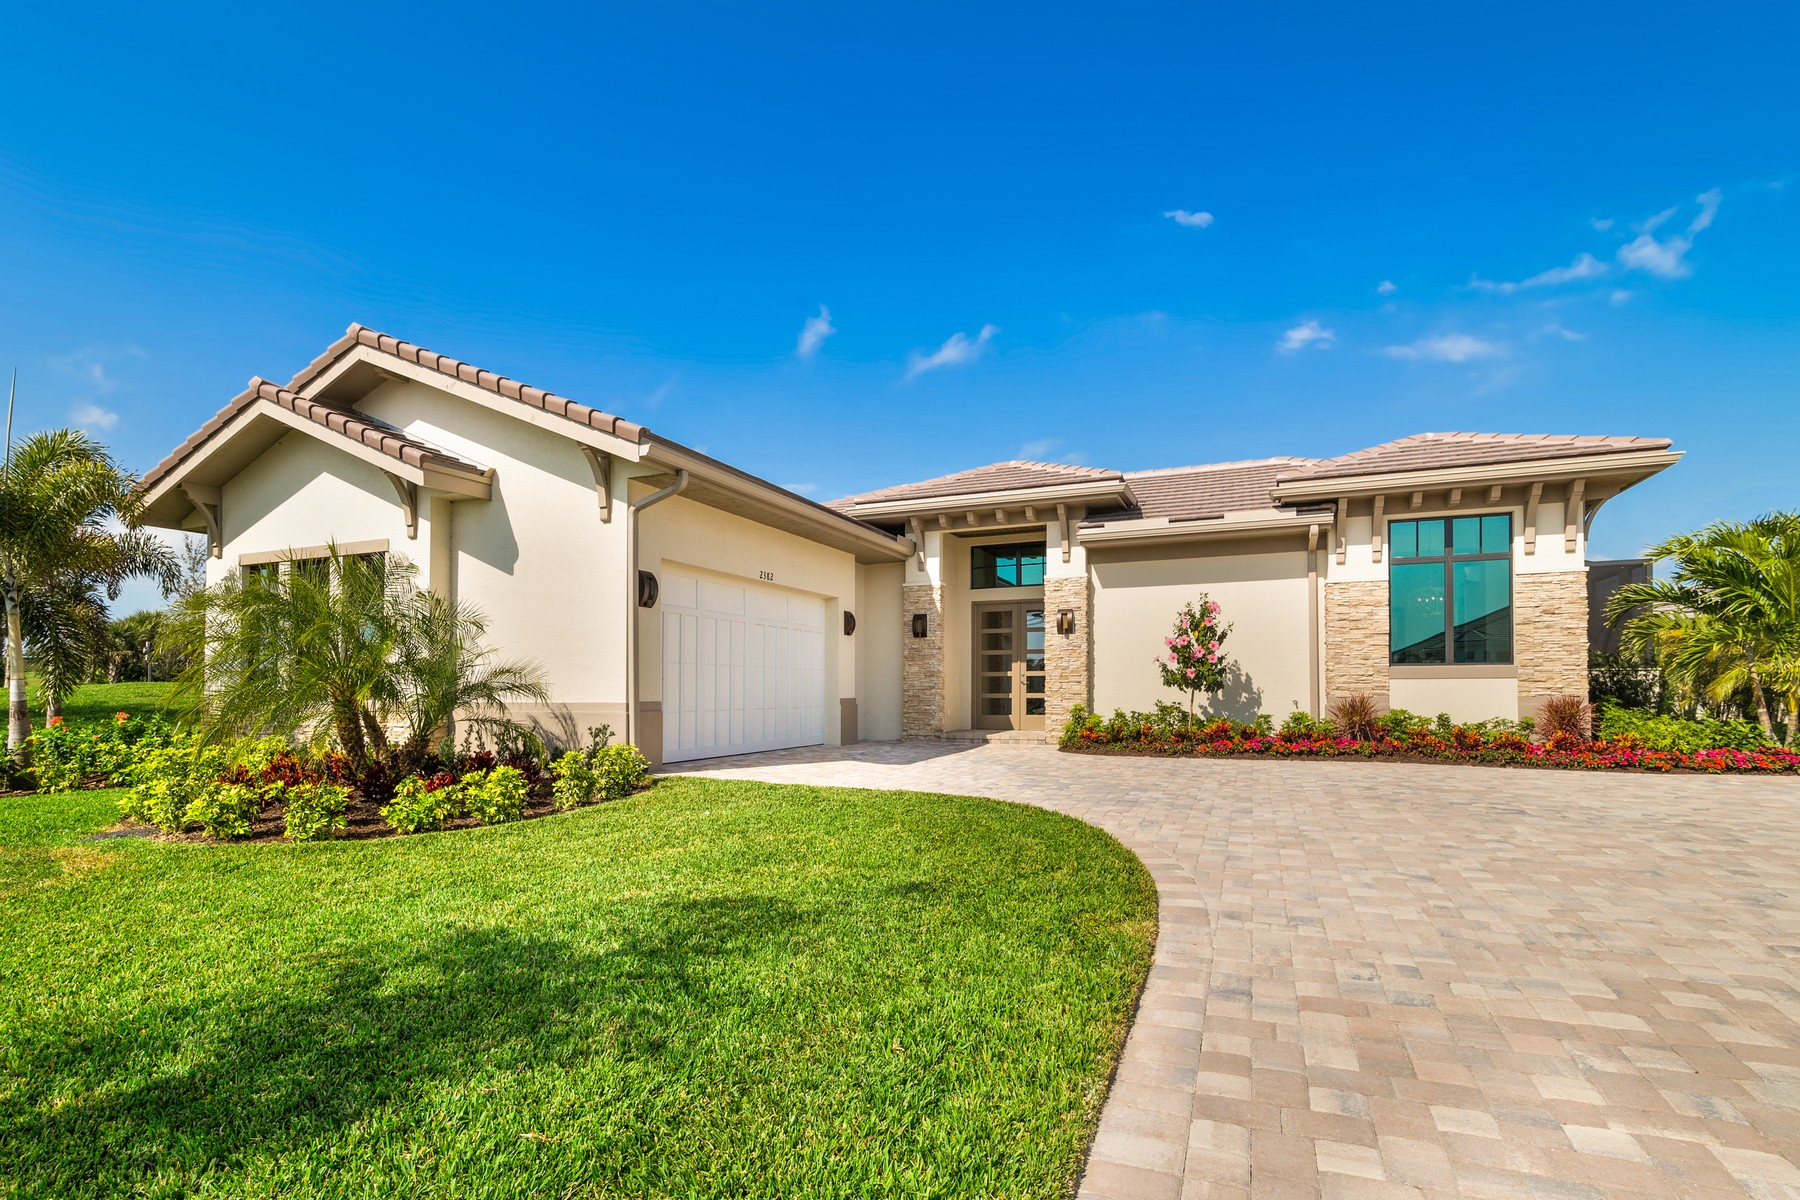 Single Family Homes für Verkauf beim Luxury New Construction in Grand Harbor 2364 Grand Harbor Reserve Square Vero Beach, Florida 32967 Vereinigte Staaten